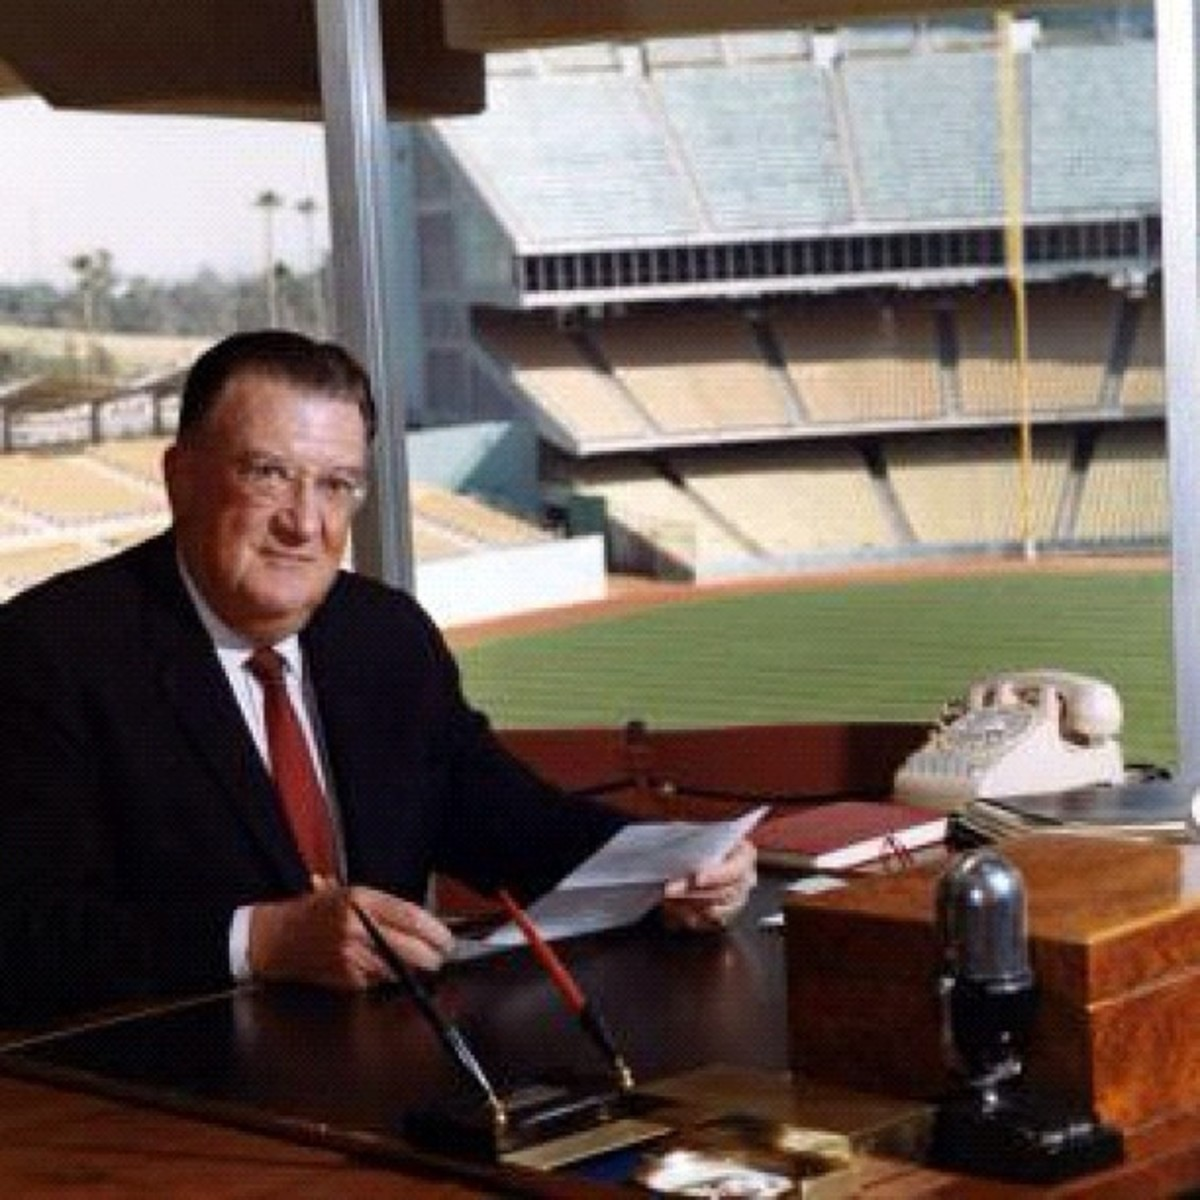 Dodger owner Walter O'Malley